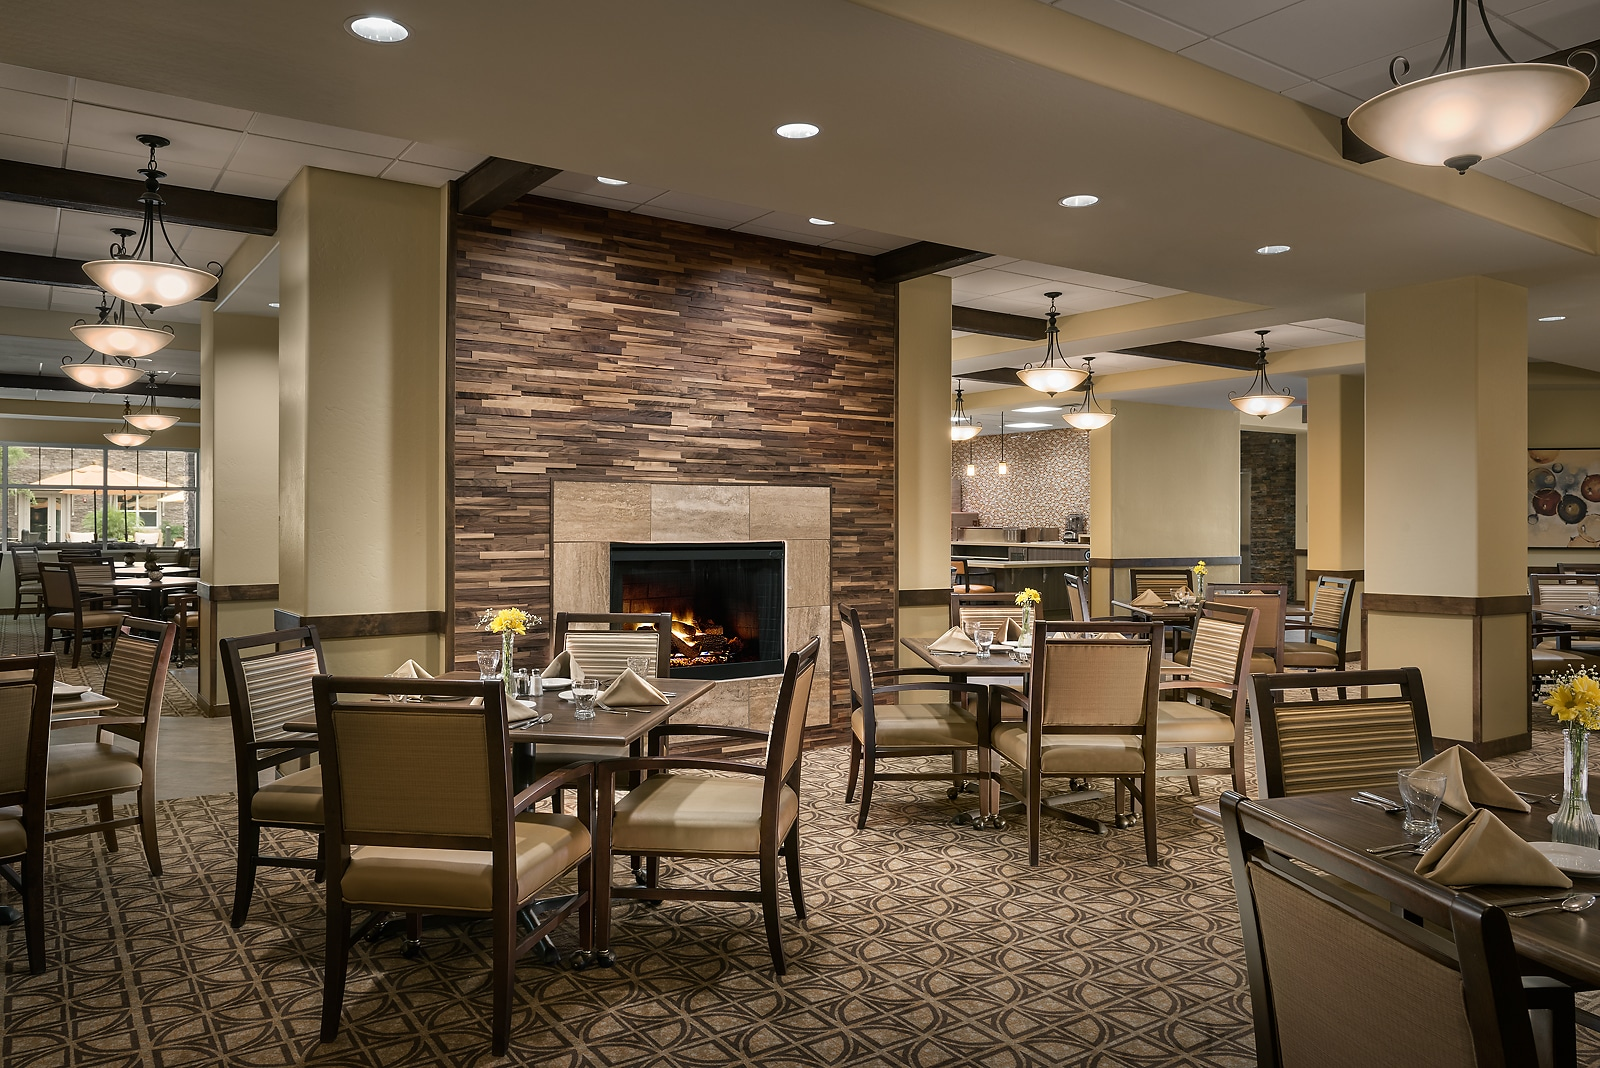 A fireplace and dining tables in the dining room of a senior living facility